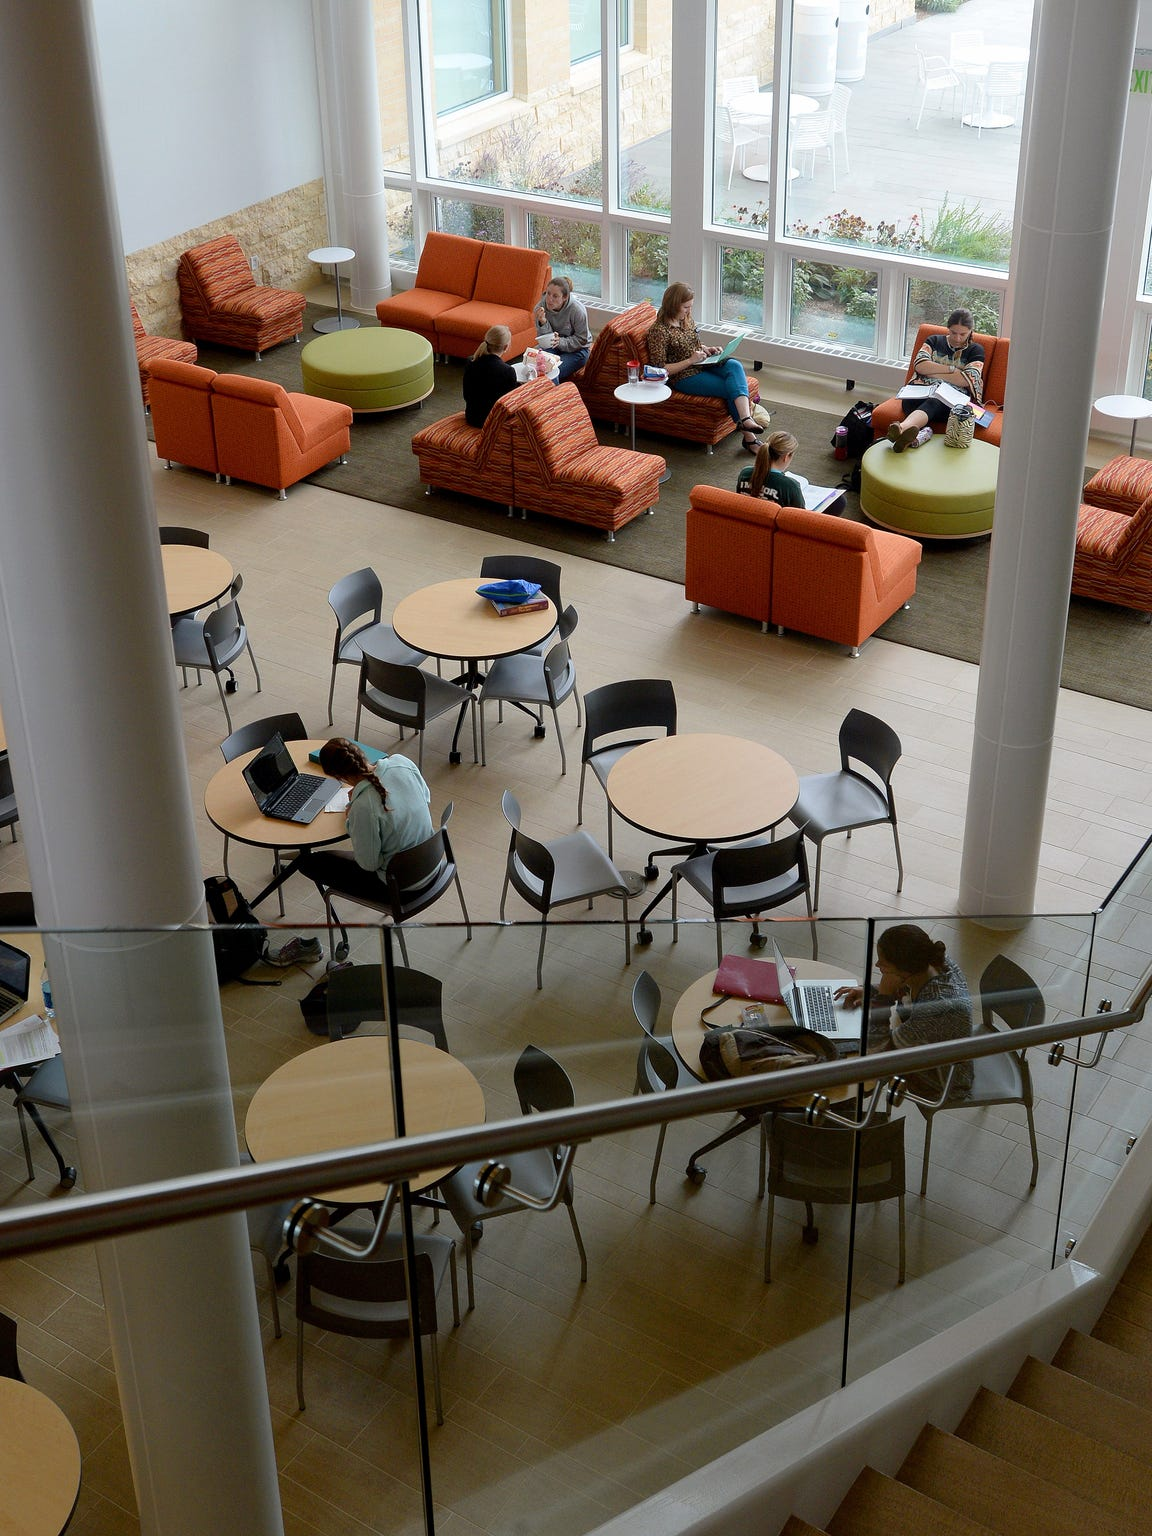 Students sit and study within the atrium at Students